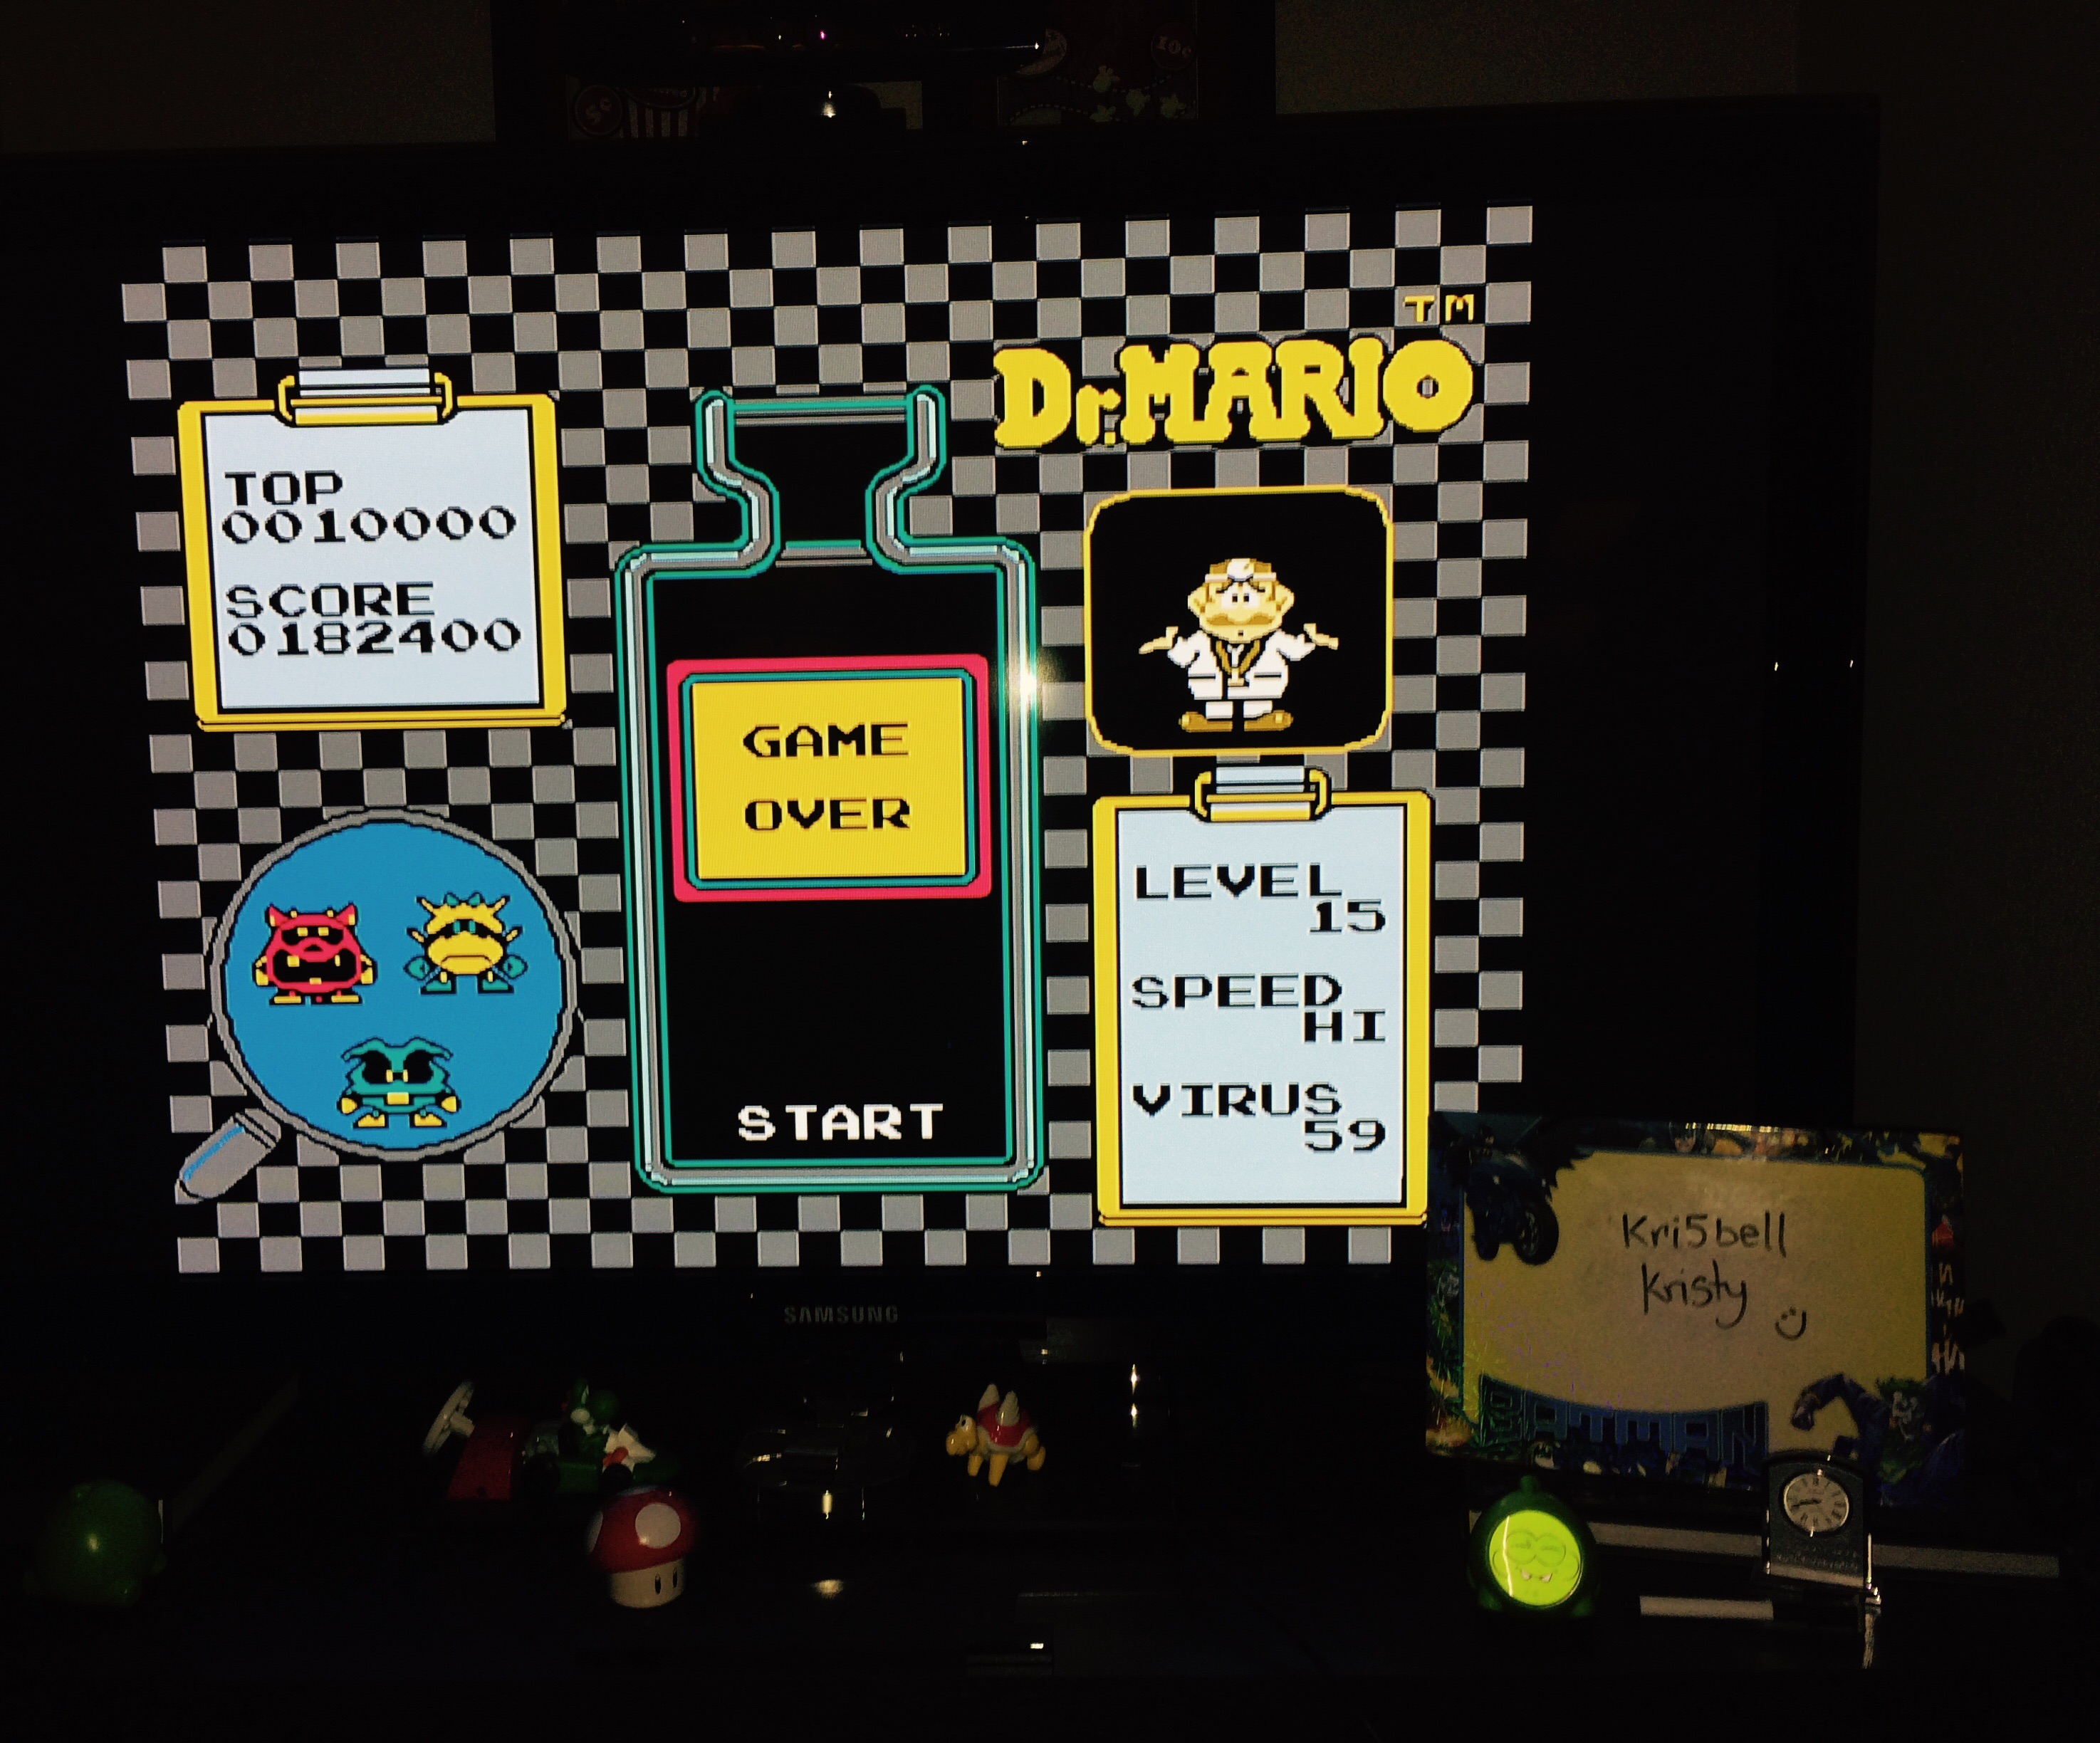 Dr. Mario 182,400 points